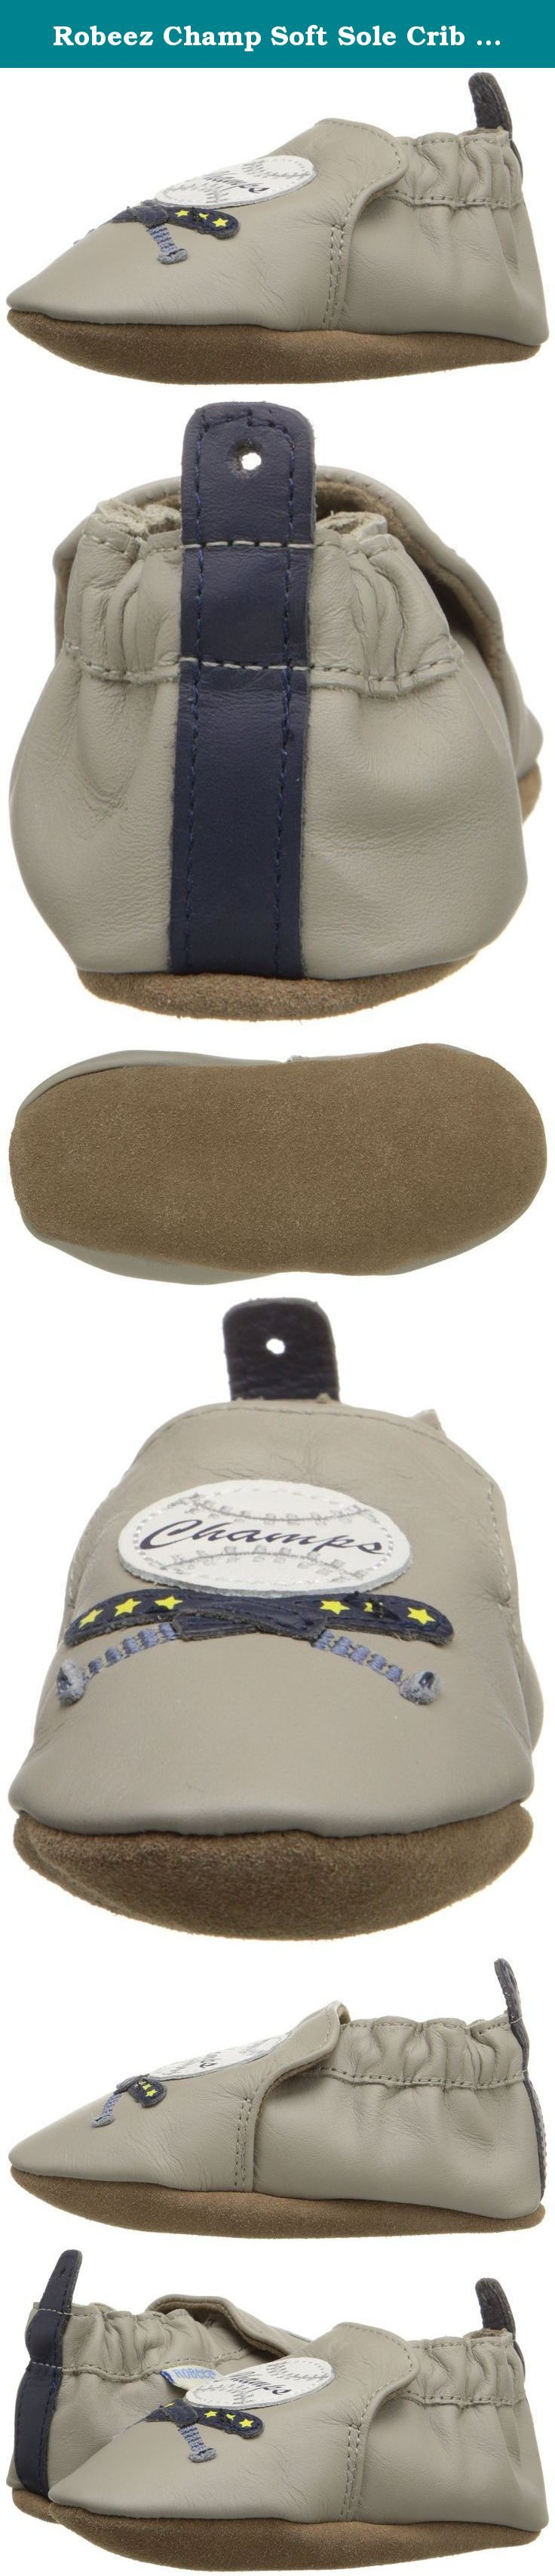 Robeez Champ Soft Sole Crib Shoe (Infant), Cool Grey, 18-24 Months M US. Robeez has been providing the premiere choice of infant footwear since 1994, maintaining the quintessential combination of fit and functionality with whimsy and innovative designs.